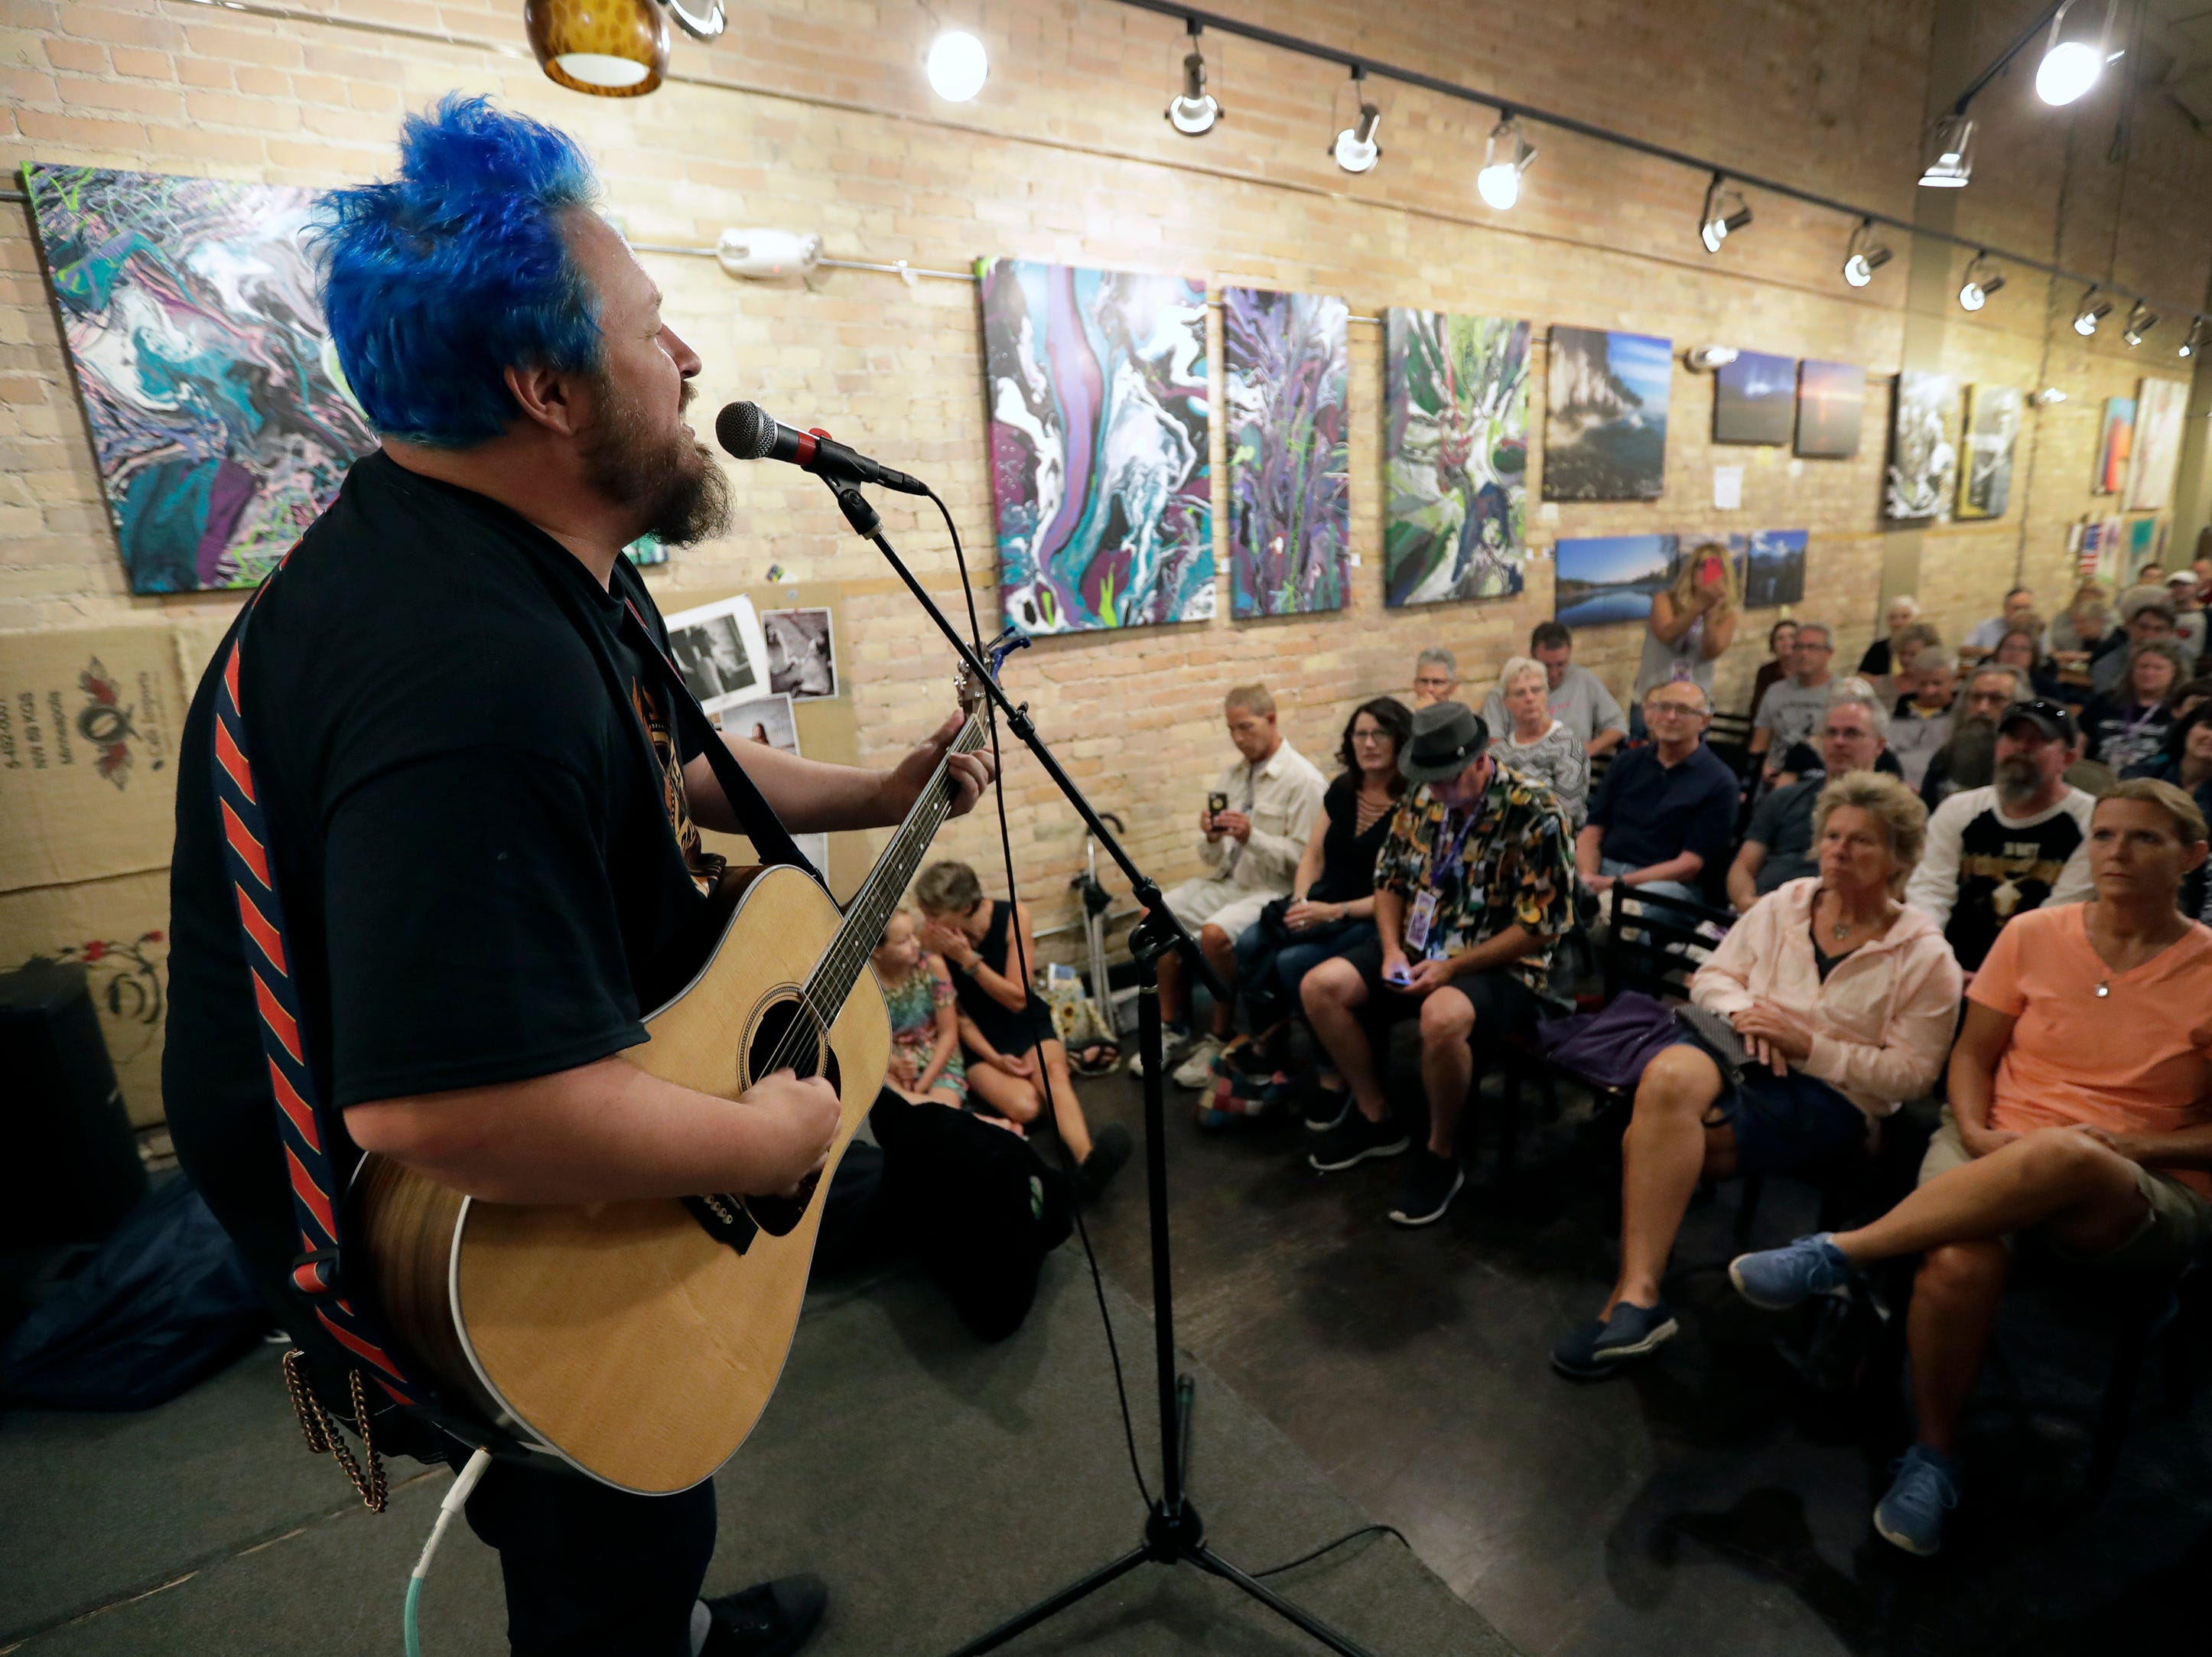 Walt Hamburger kicks off Mile of Music as he performs at the Copper Rock Coffee Company Thursday, August 2, 2018, in Appleton, Wis.  Dan Powers/USA TODAY NETWORK-Wisconsin